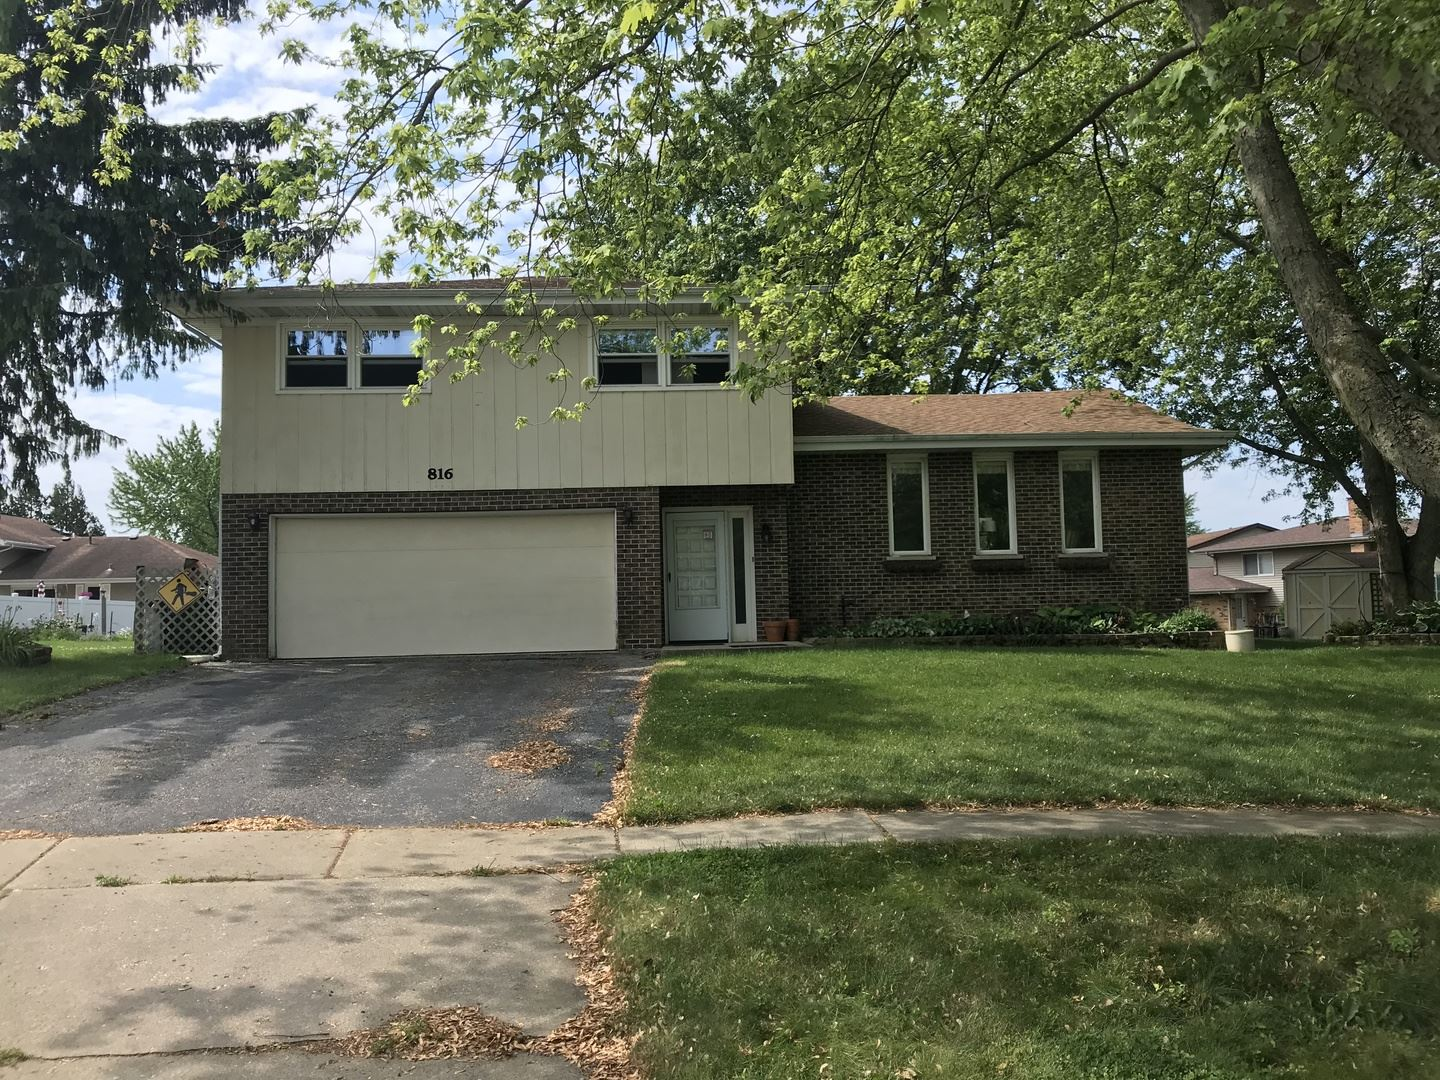 816 Aeronca Court, New Lenox, IL 60451 - #: 10755542